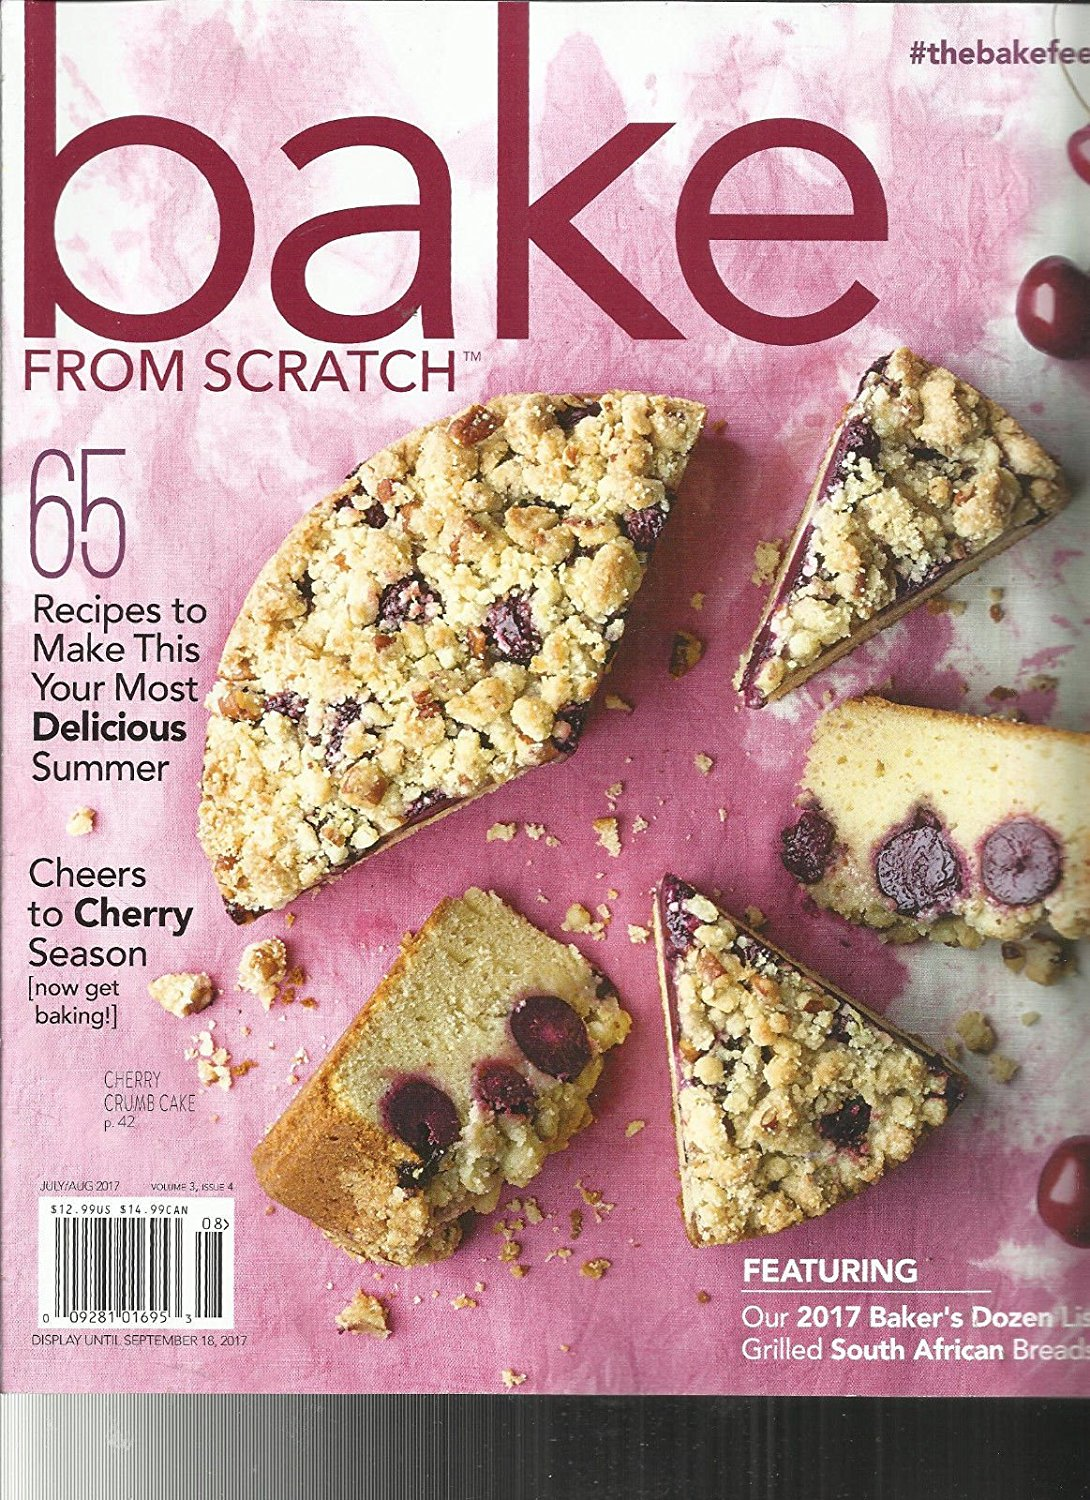 BAKE FROM SCRATCH MAGAZINE, JULY / AUGUST, 2017 VOLUME, 3 ISSUE, 4